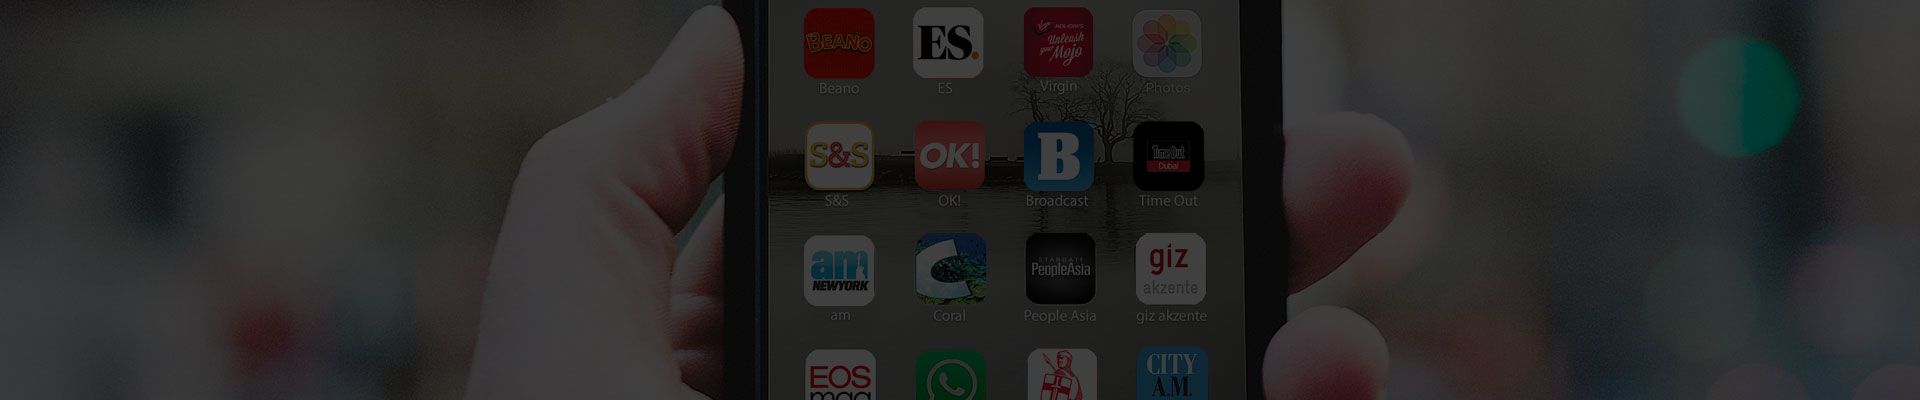 Mobile & Tablet Apps | Publishing Apps | PageSuite